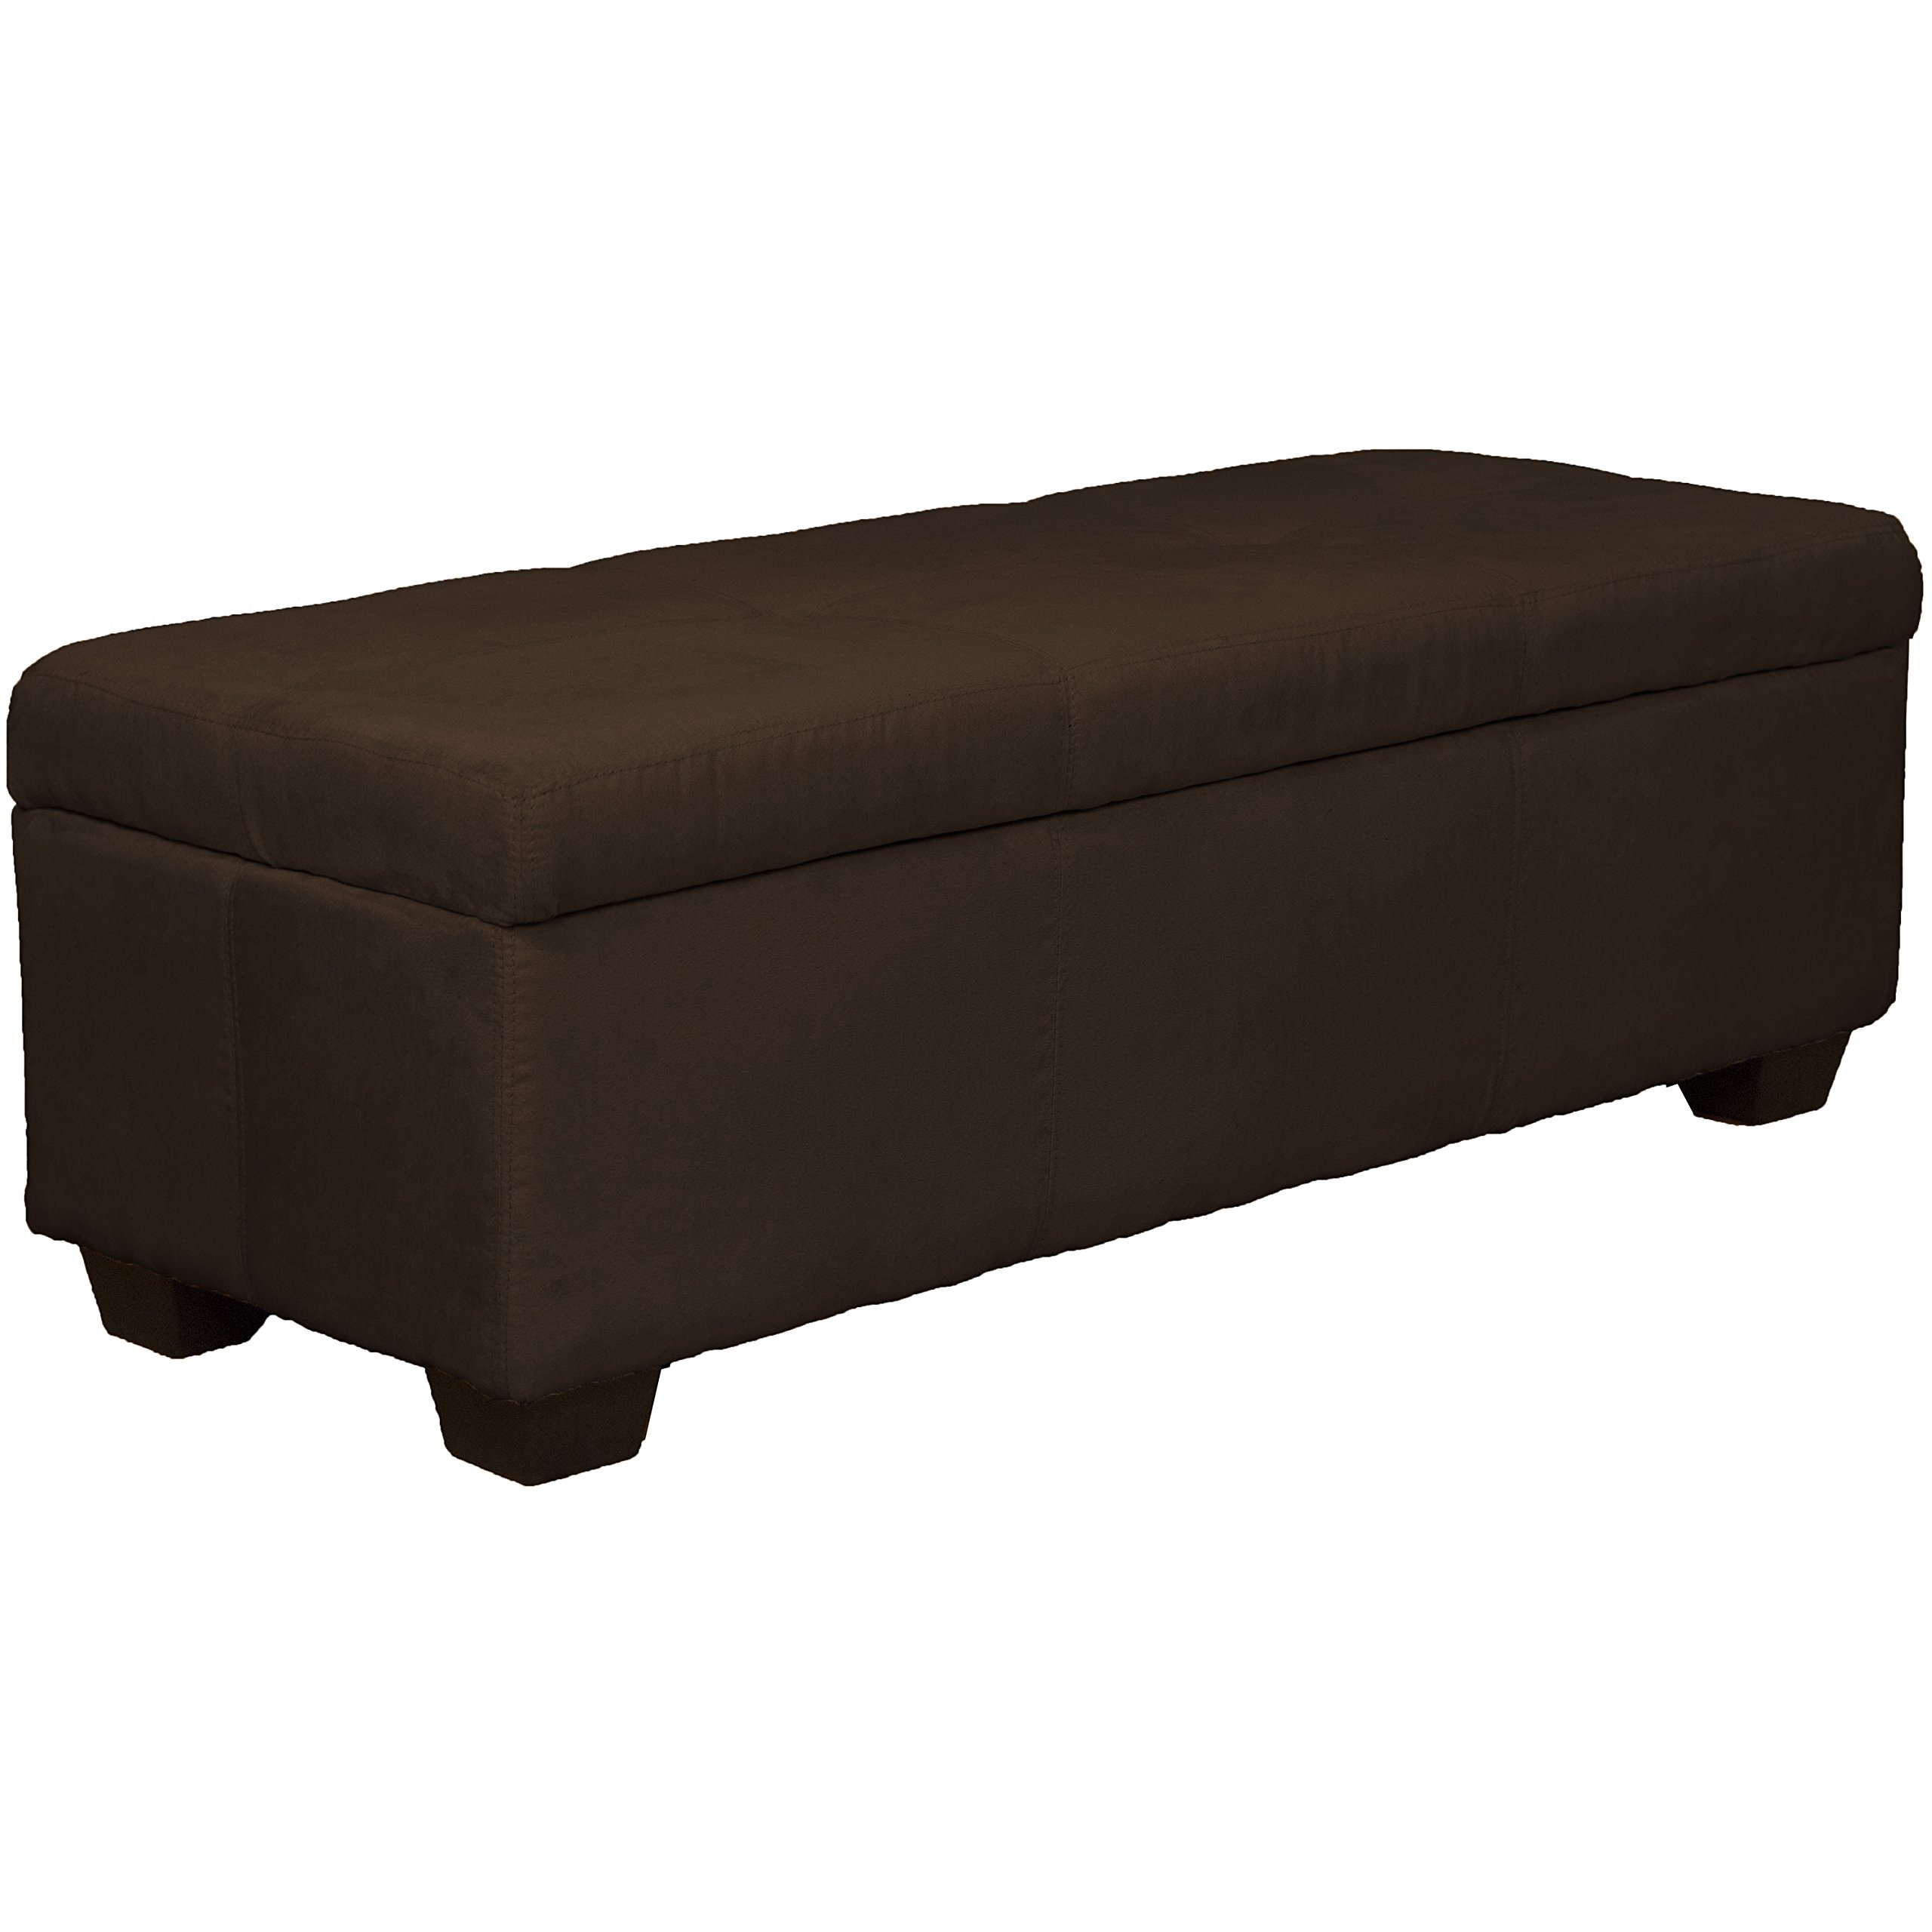 48'' x 19'' x 18'' high Tufted Padded Hinged Storage Ottoman Bench, Microfiber Suede Chocolate Brown